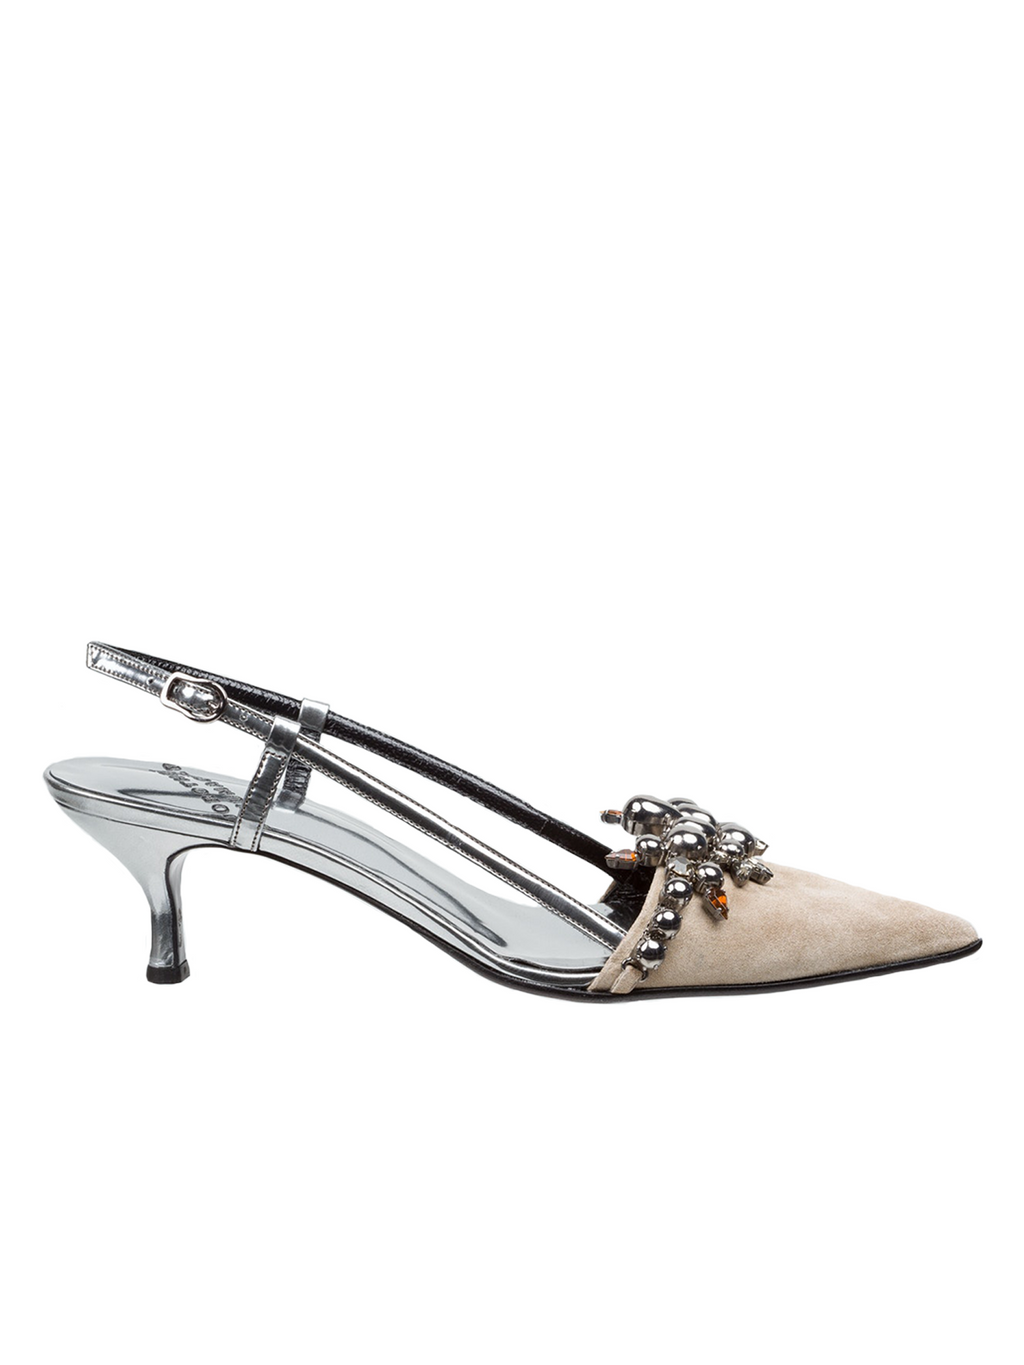 Dorothee Schumacher Chic Summer Kitten Heel